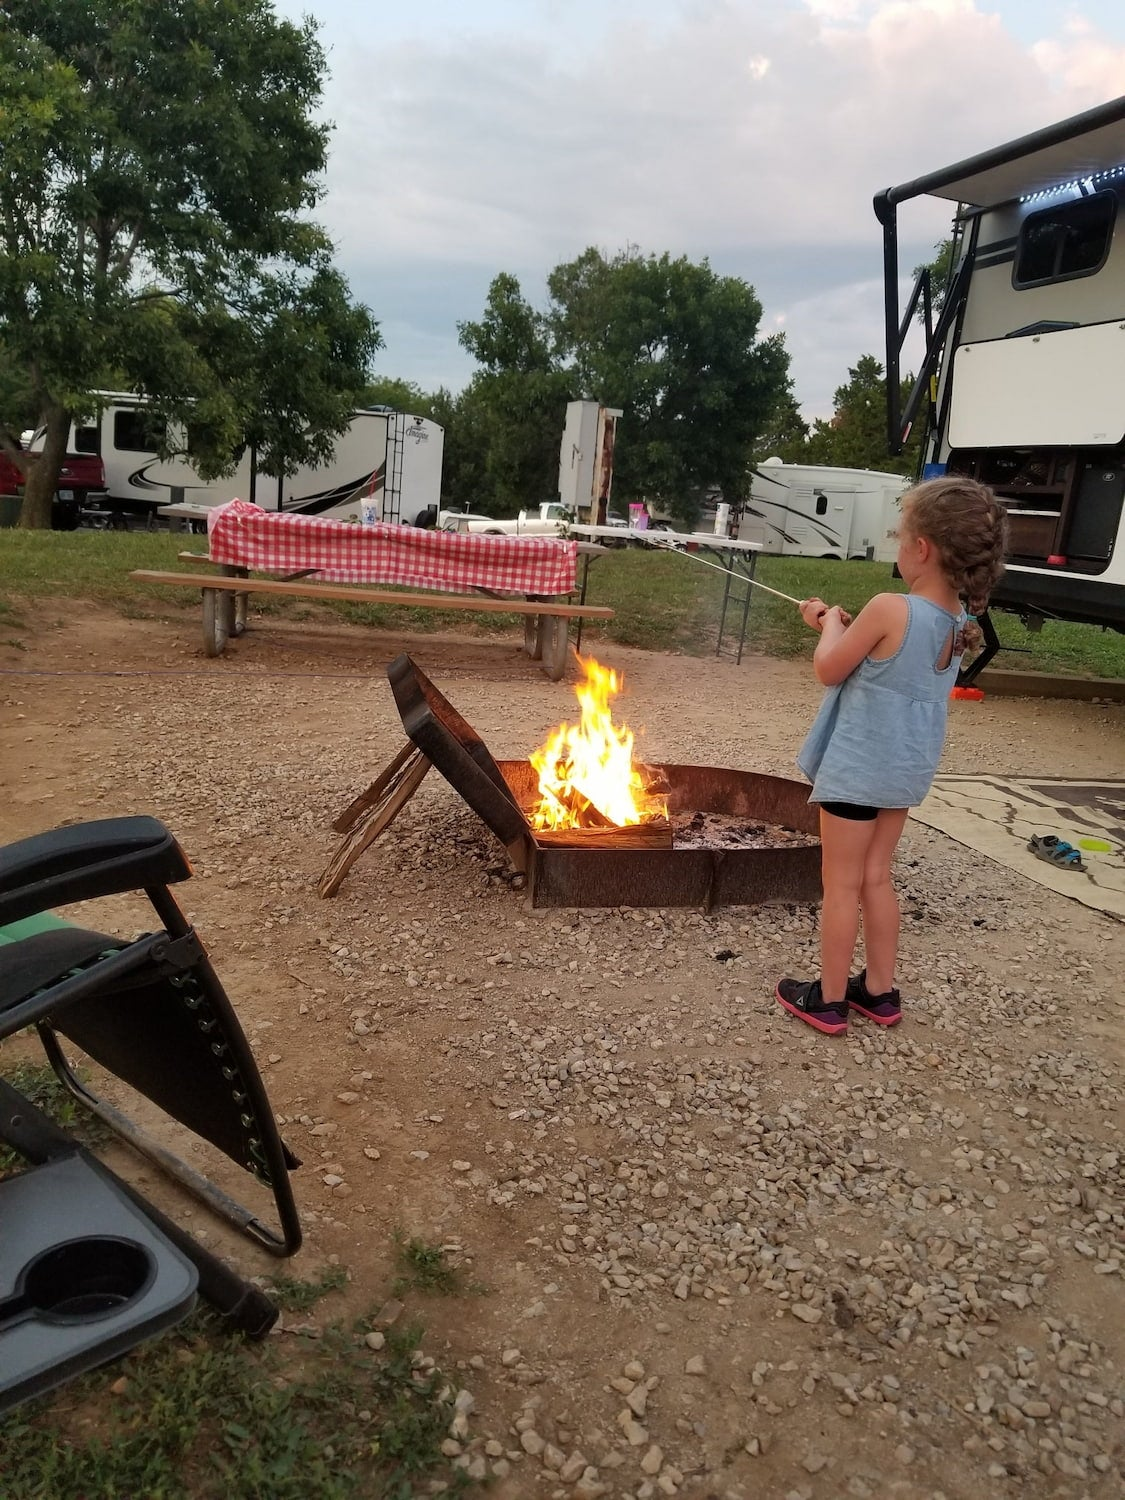 Girl holding a stick with a marhsmallow over a fire pit at an RV campsite.